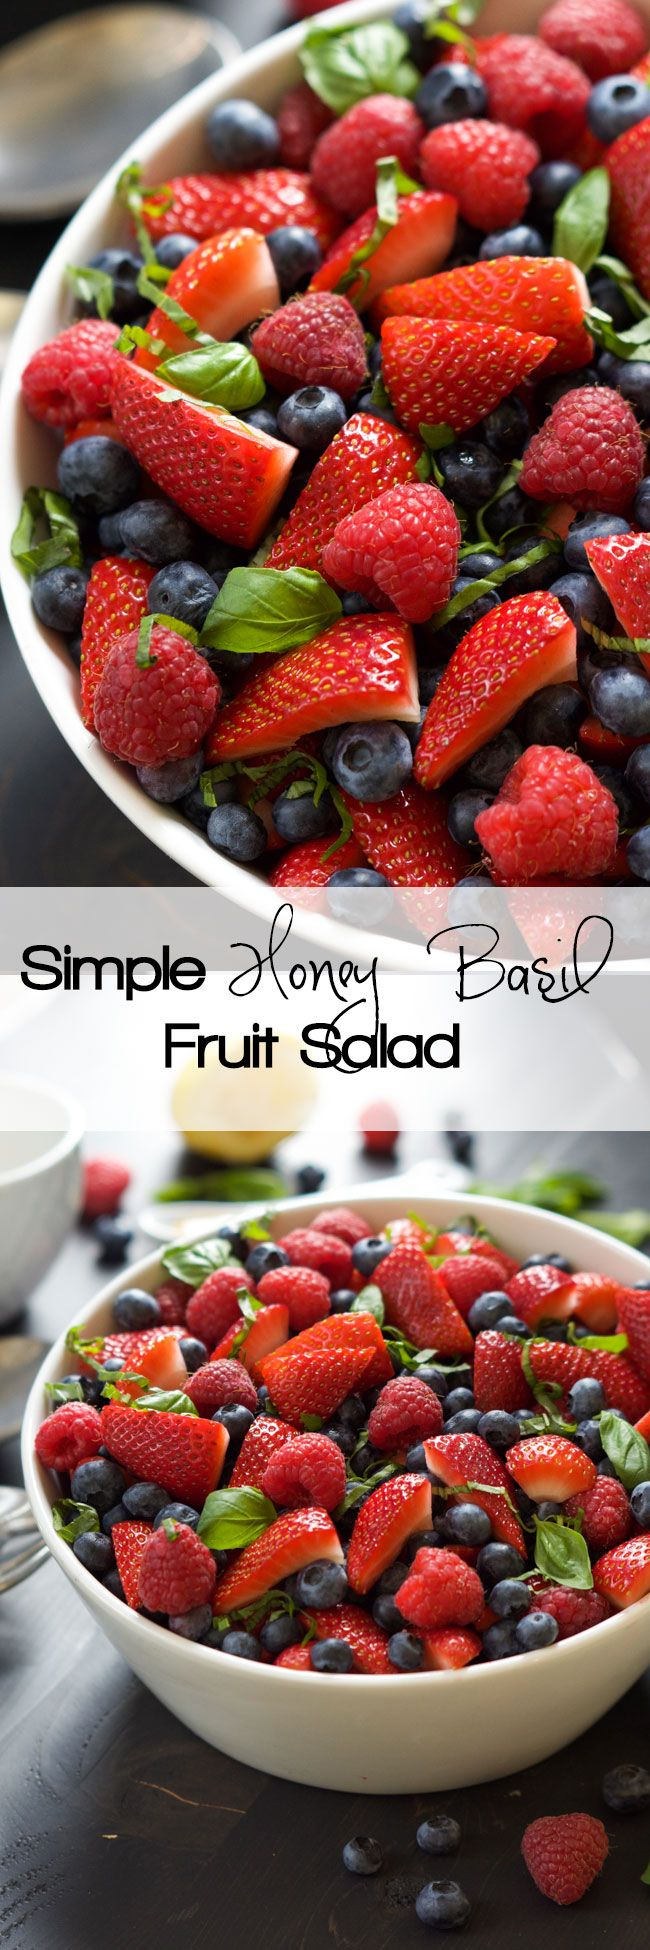 A salad doesn't get any better or fresher than this! Honey Basil Fruit Salad is a mix of fresh fruit and tossed in a 3 ingredient dressing: honey, basil and lemon! #FruitSalad #Fresh #Glutenfree #Fruit